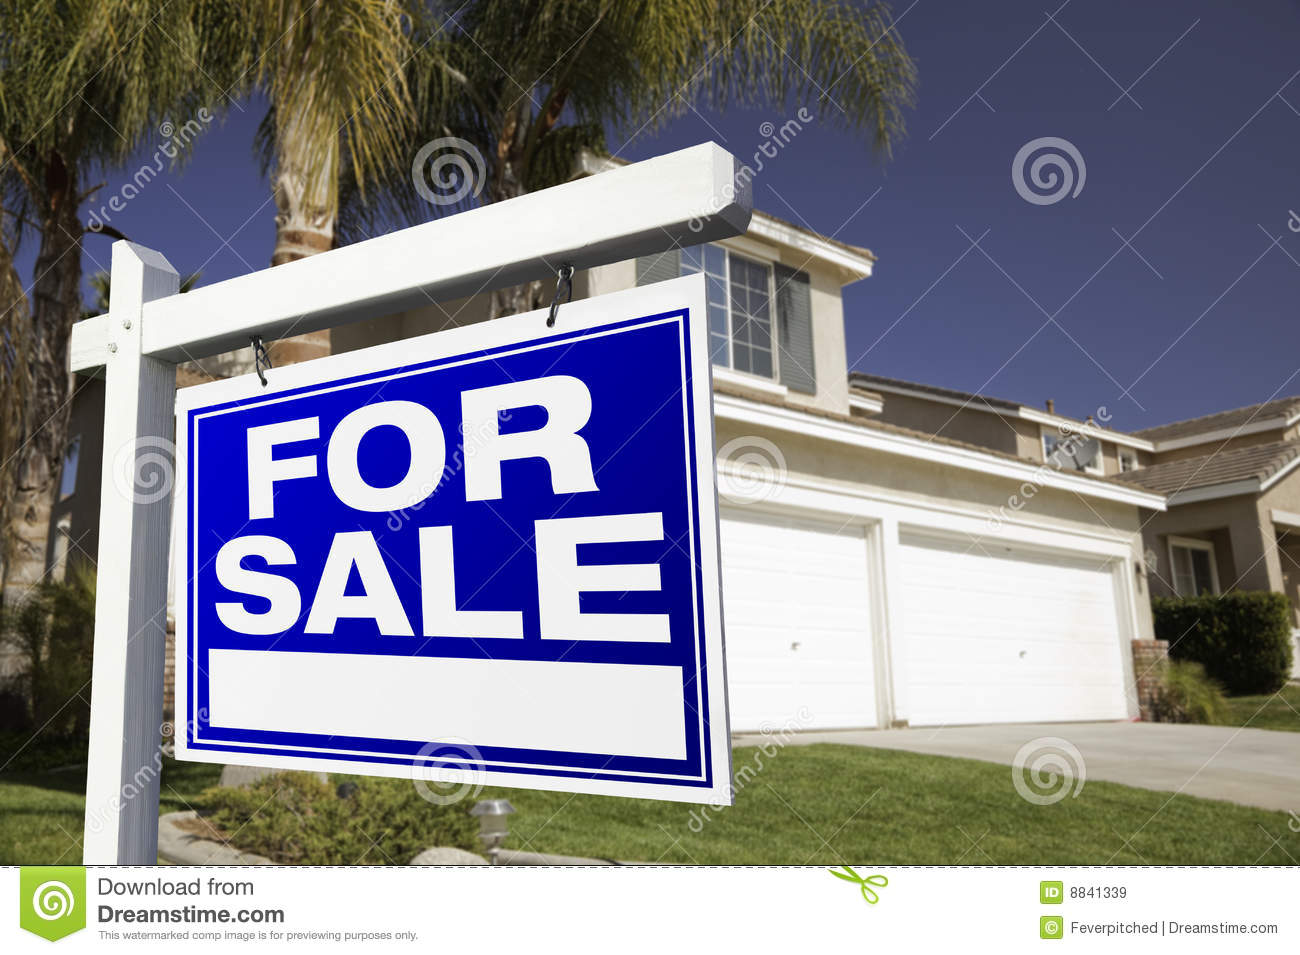 Cp Property Estate Agents Leeds List Of Houses For Sale